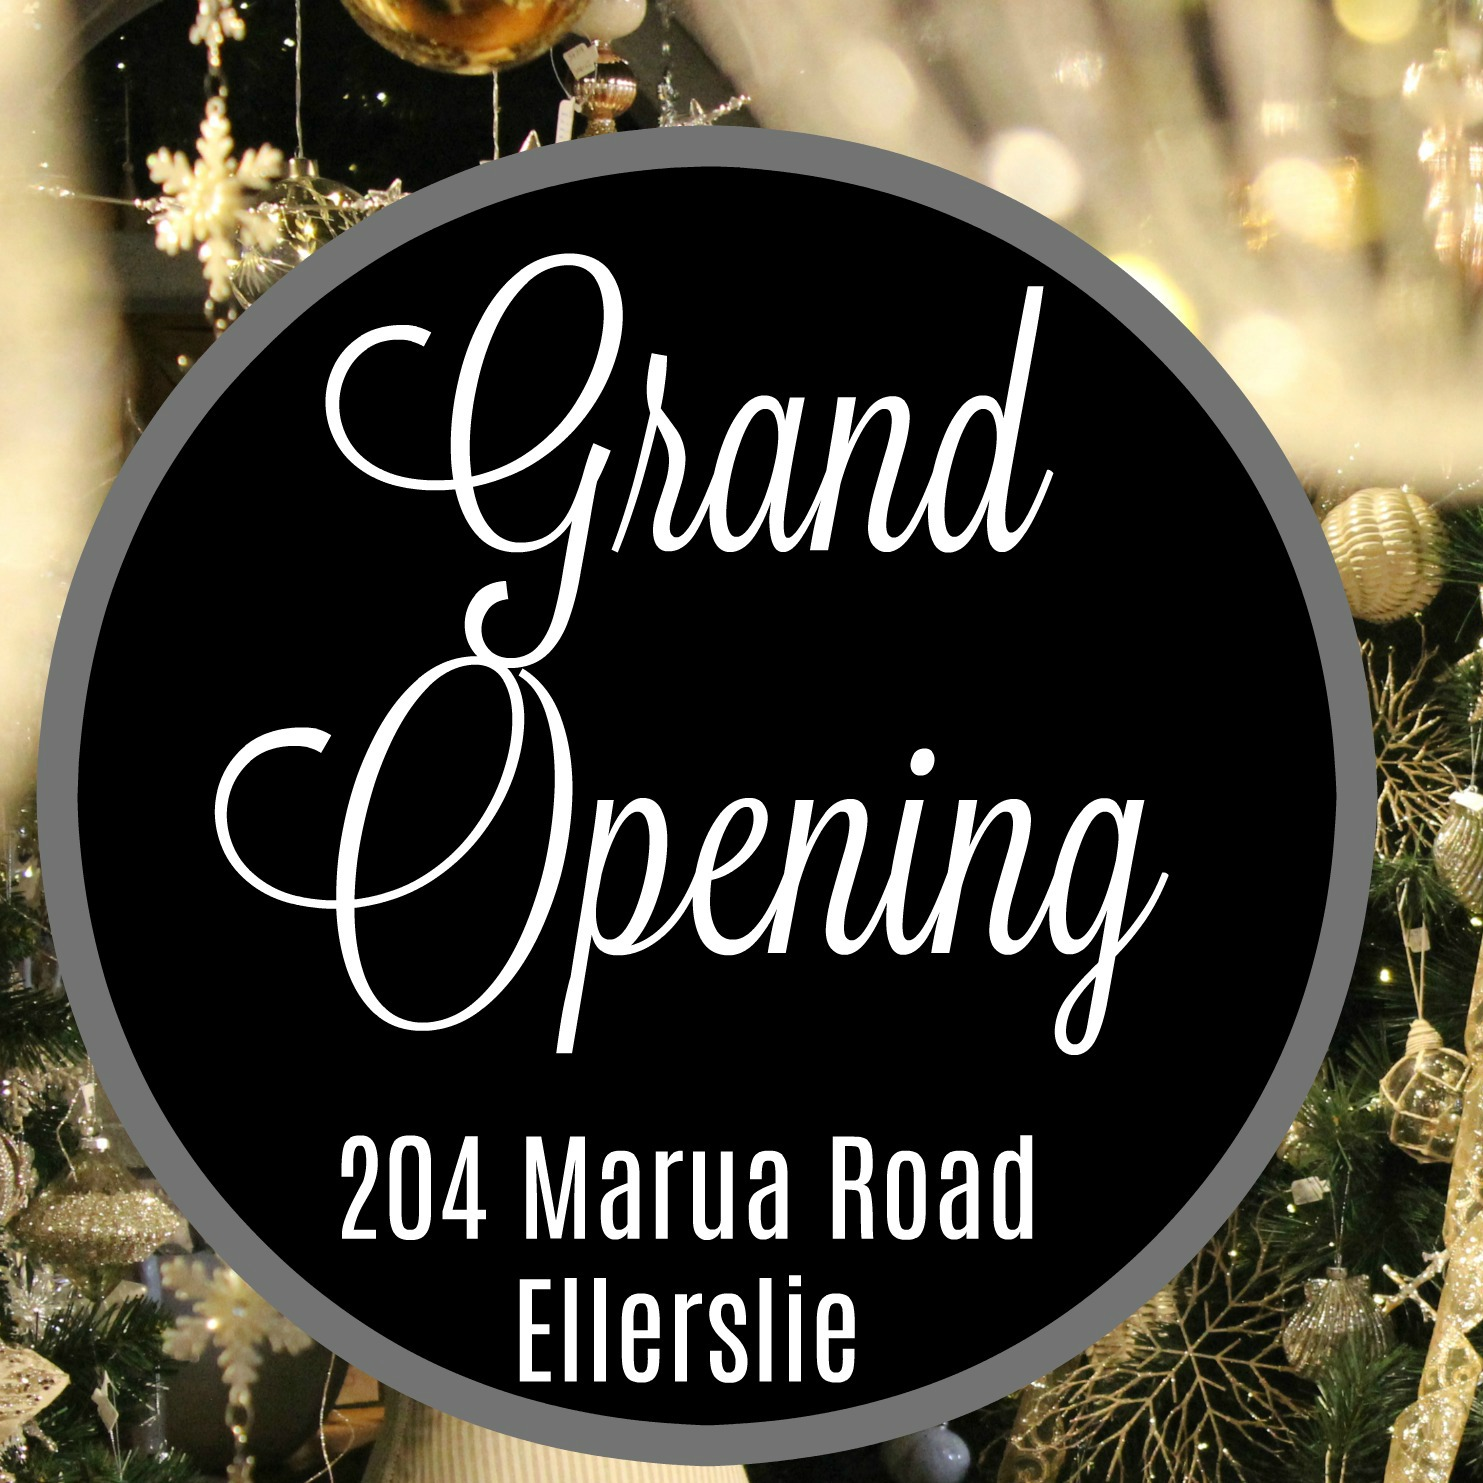 The Christmas Heirloom Company Grand Opening at Ellerslie 2017